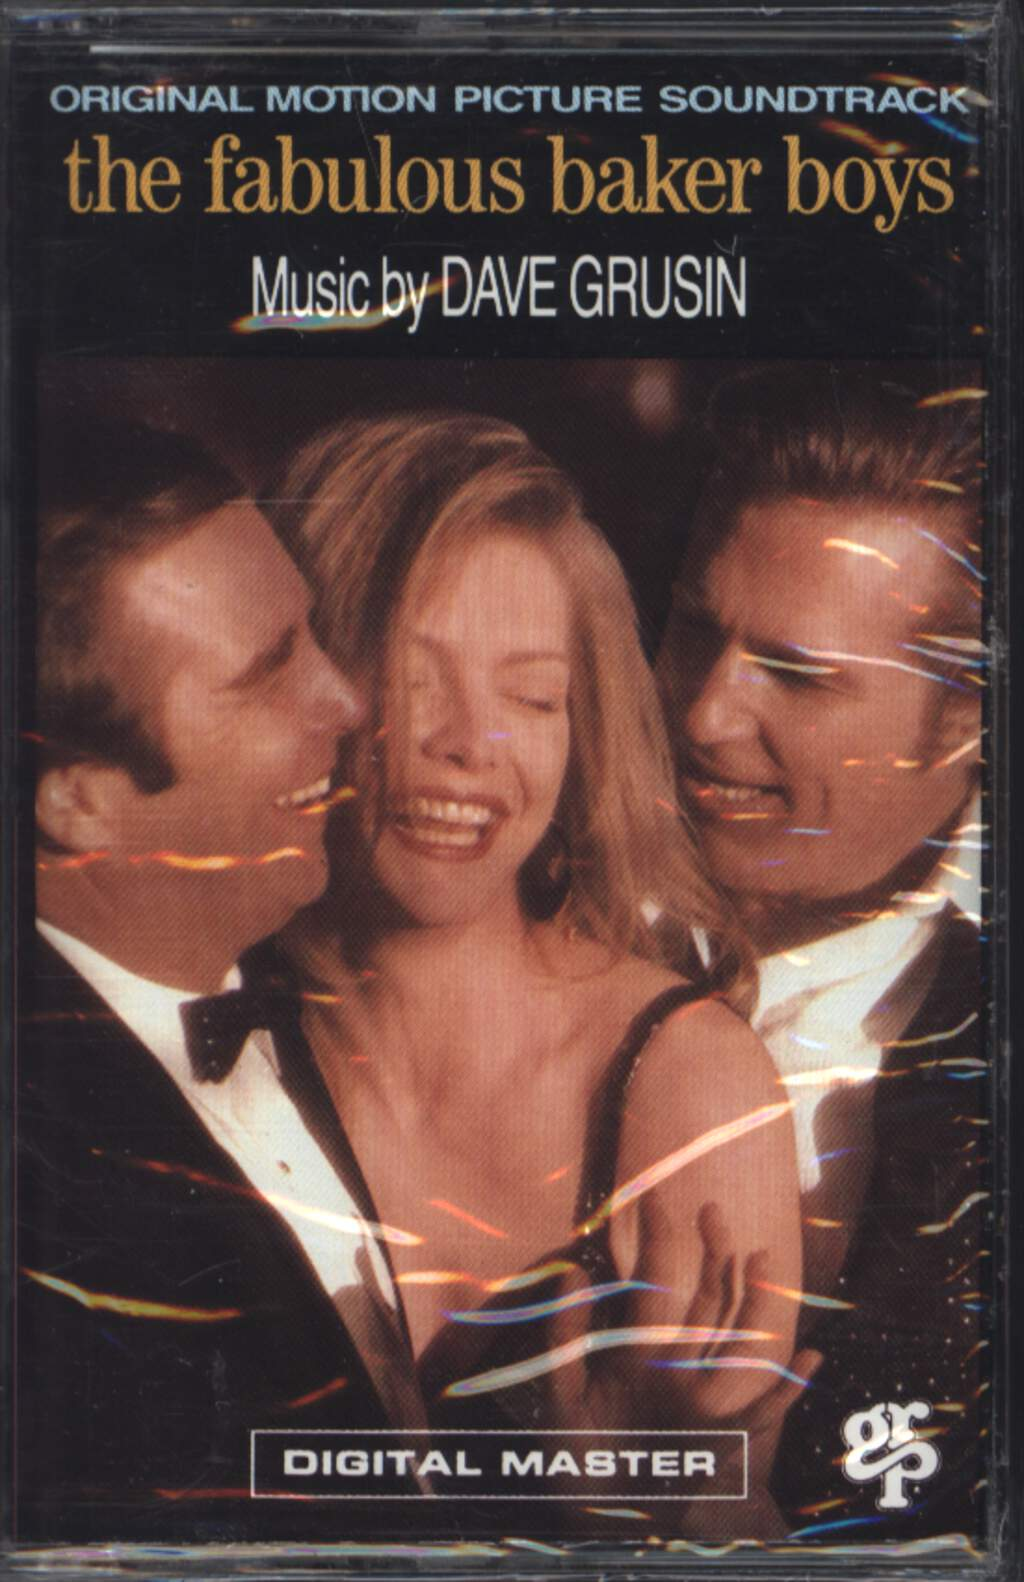 Dave Grusin: The Fabulous Baker Boys - Original Motion Picture Soundtrack, Compact Cassette